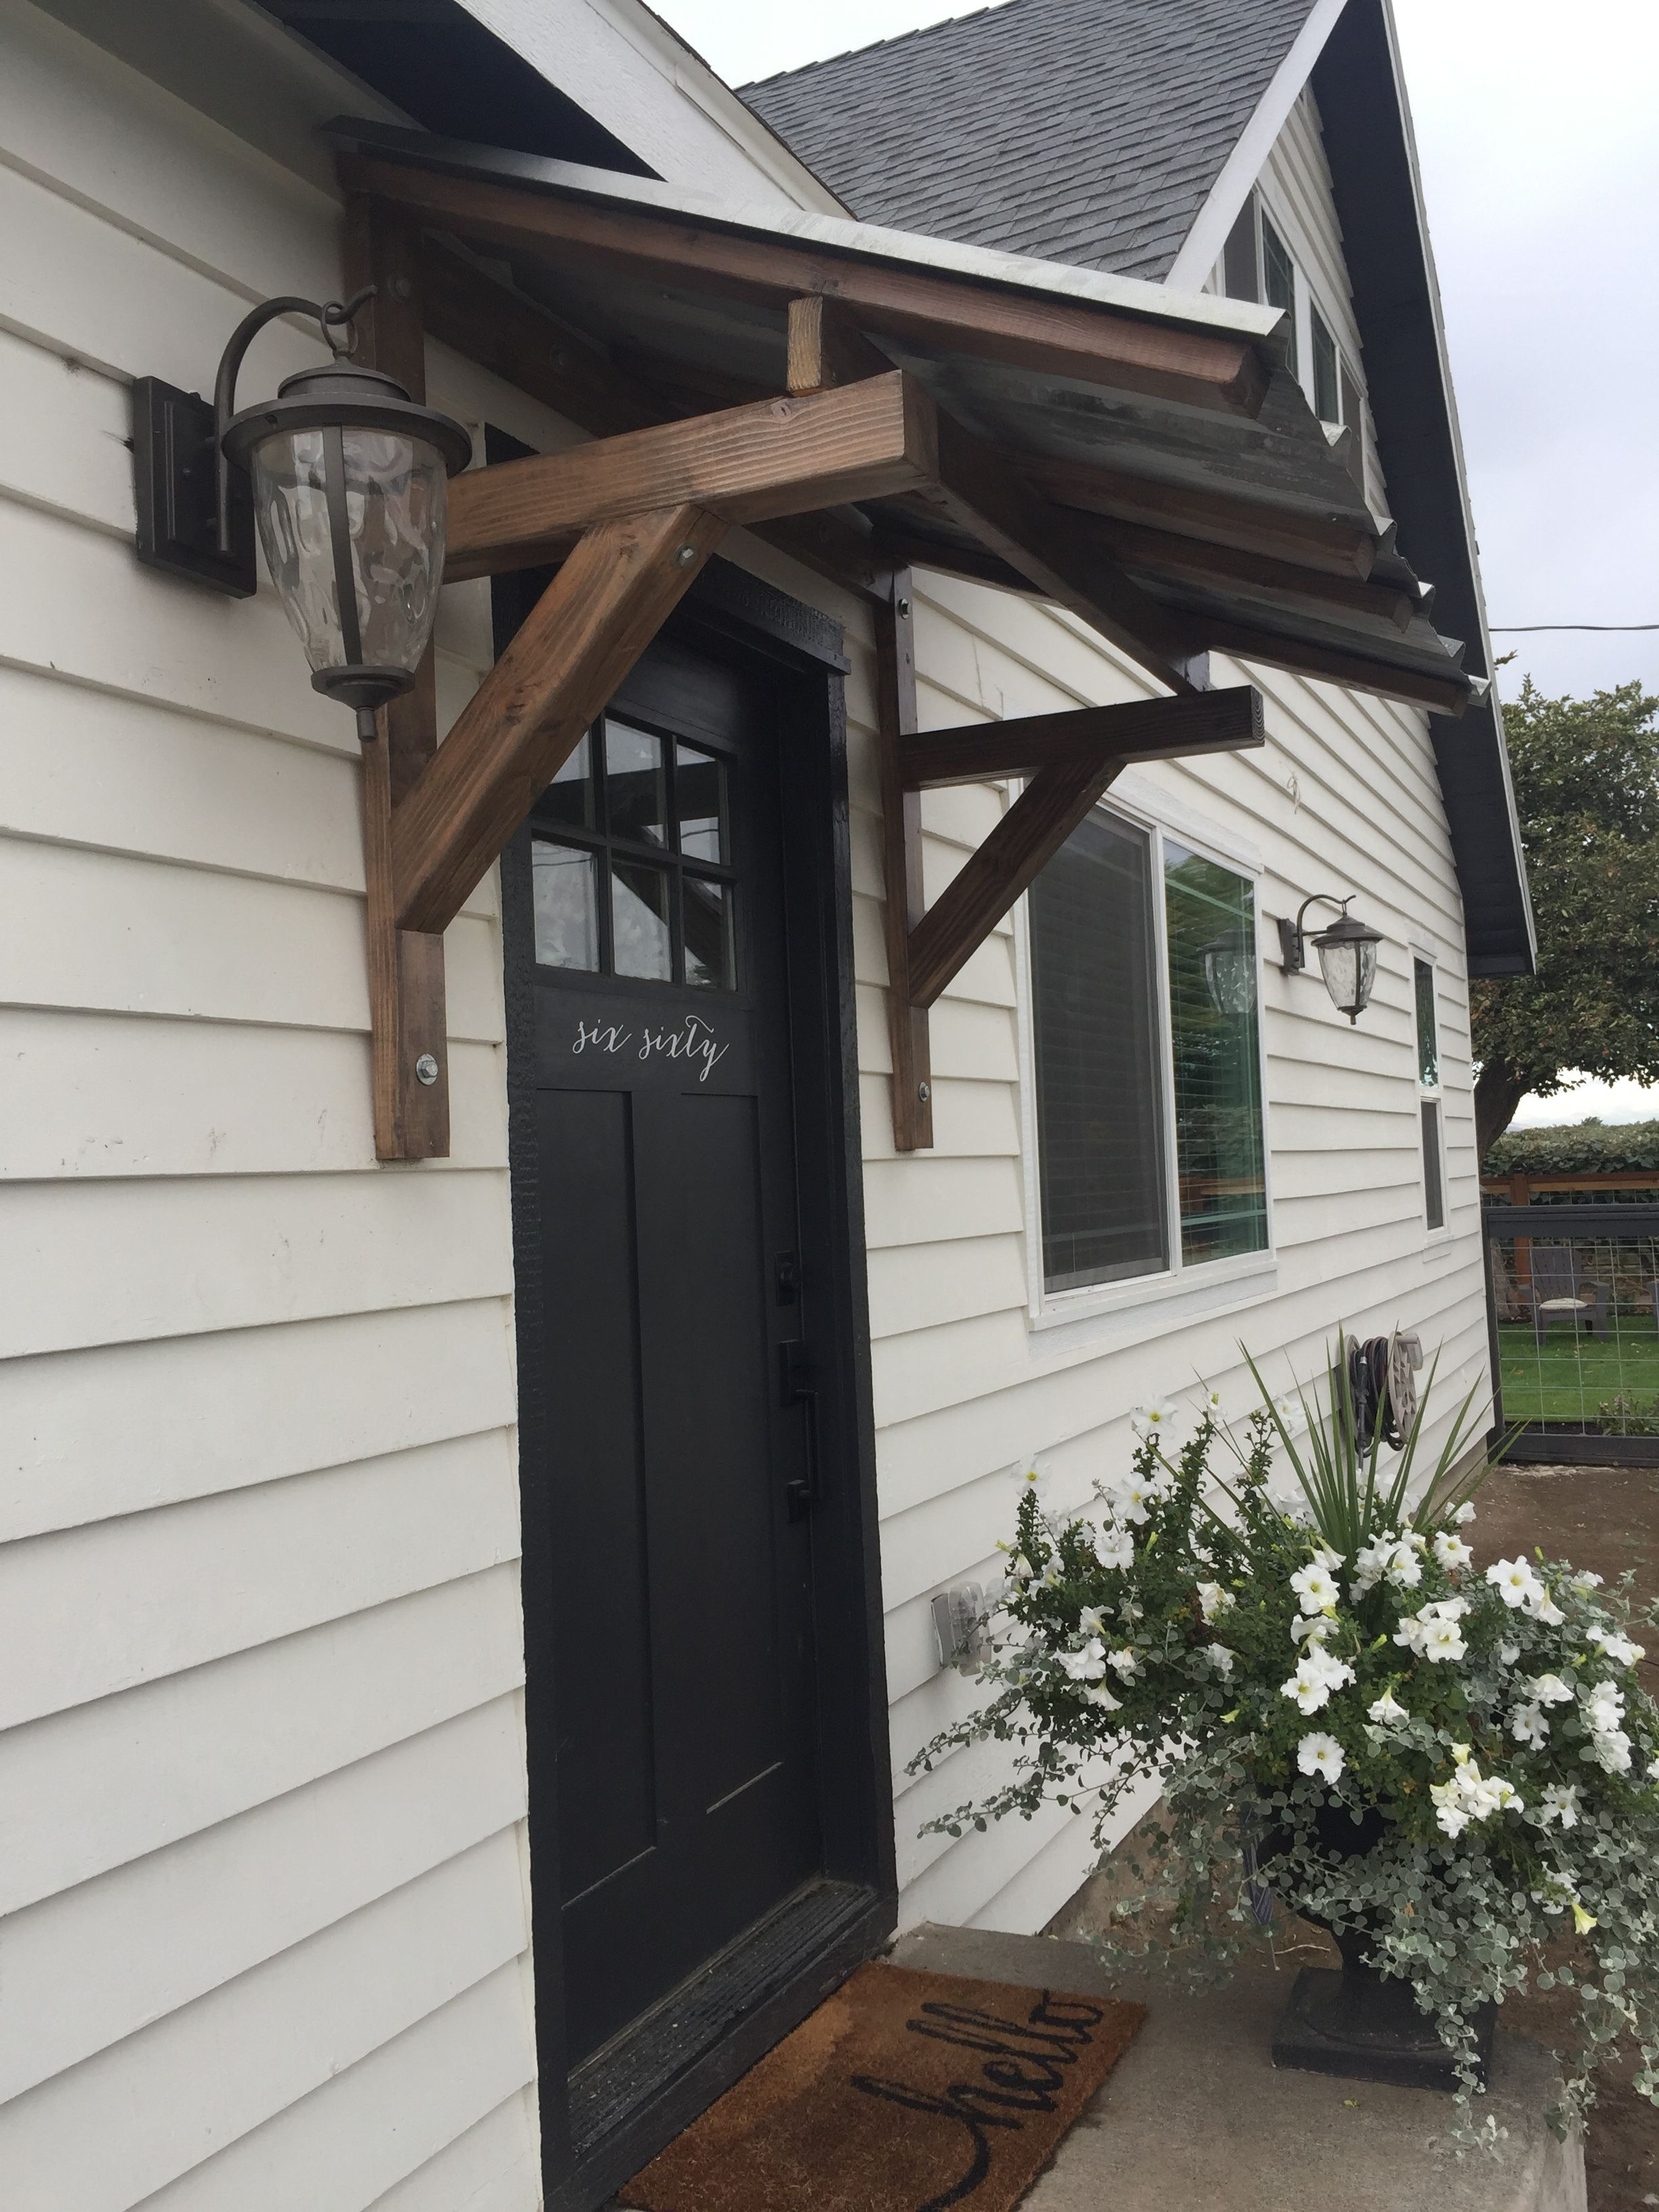 Front Porch Awning Made From Recycled Materials House Awnings Porch Awning House Exterior